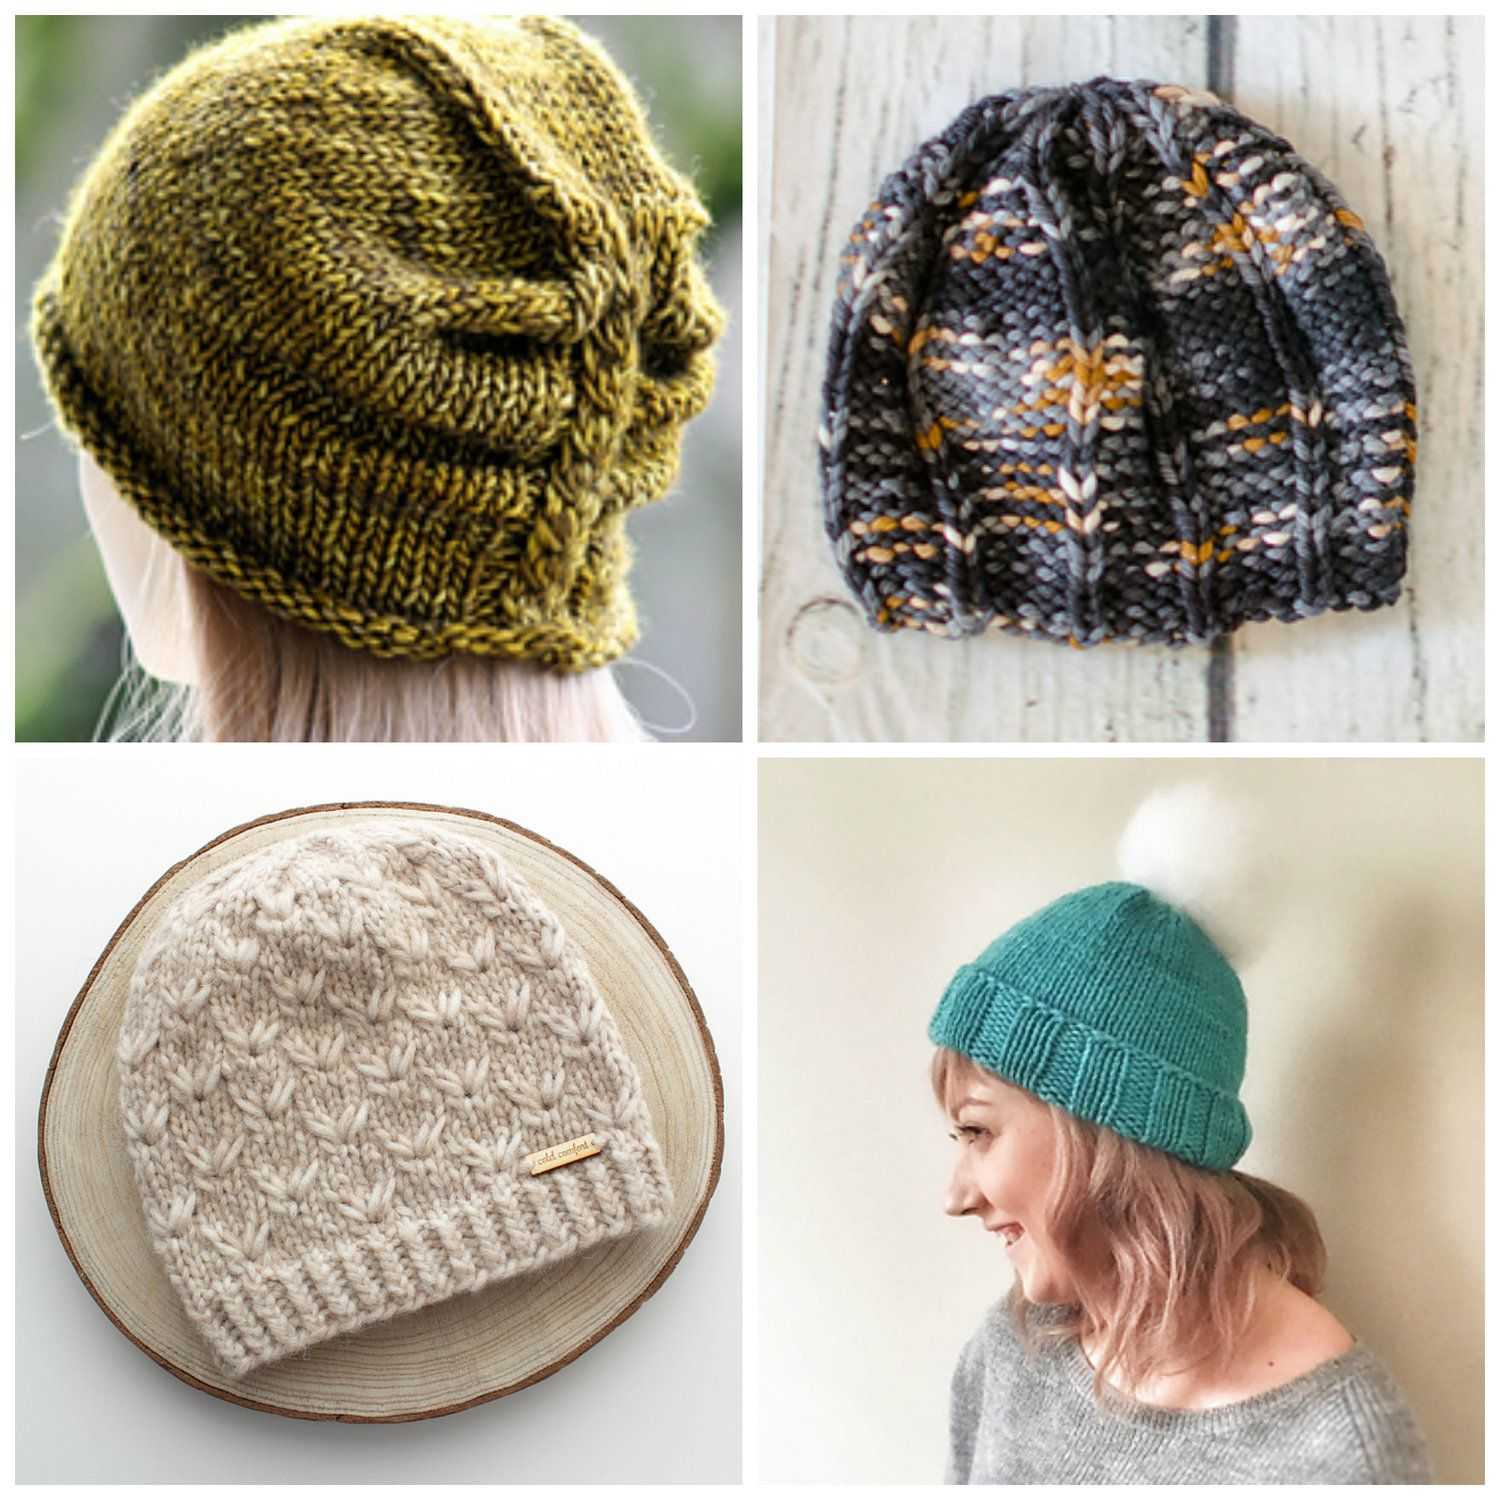 Super Quick Knits: 1 -2 Skein Bulky Pattern Ideas ...